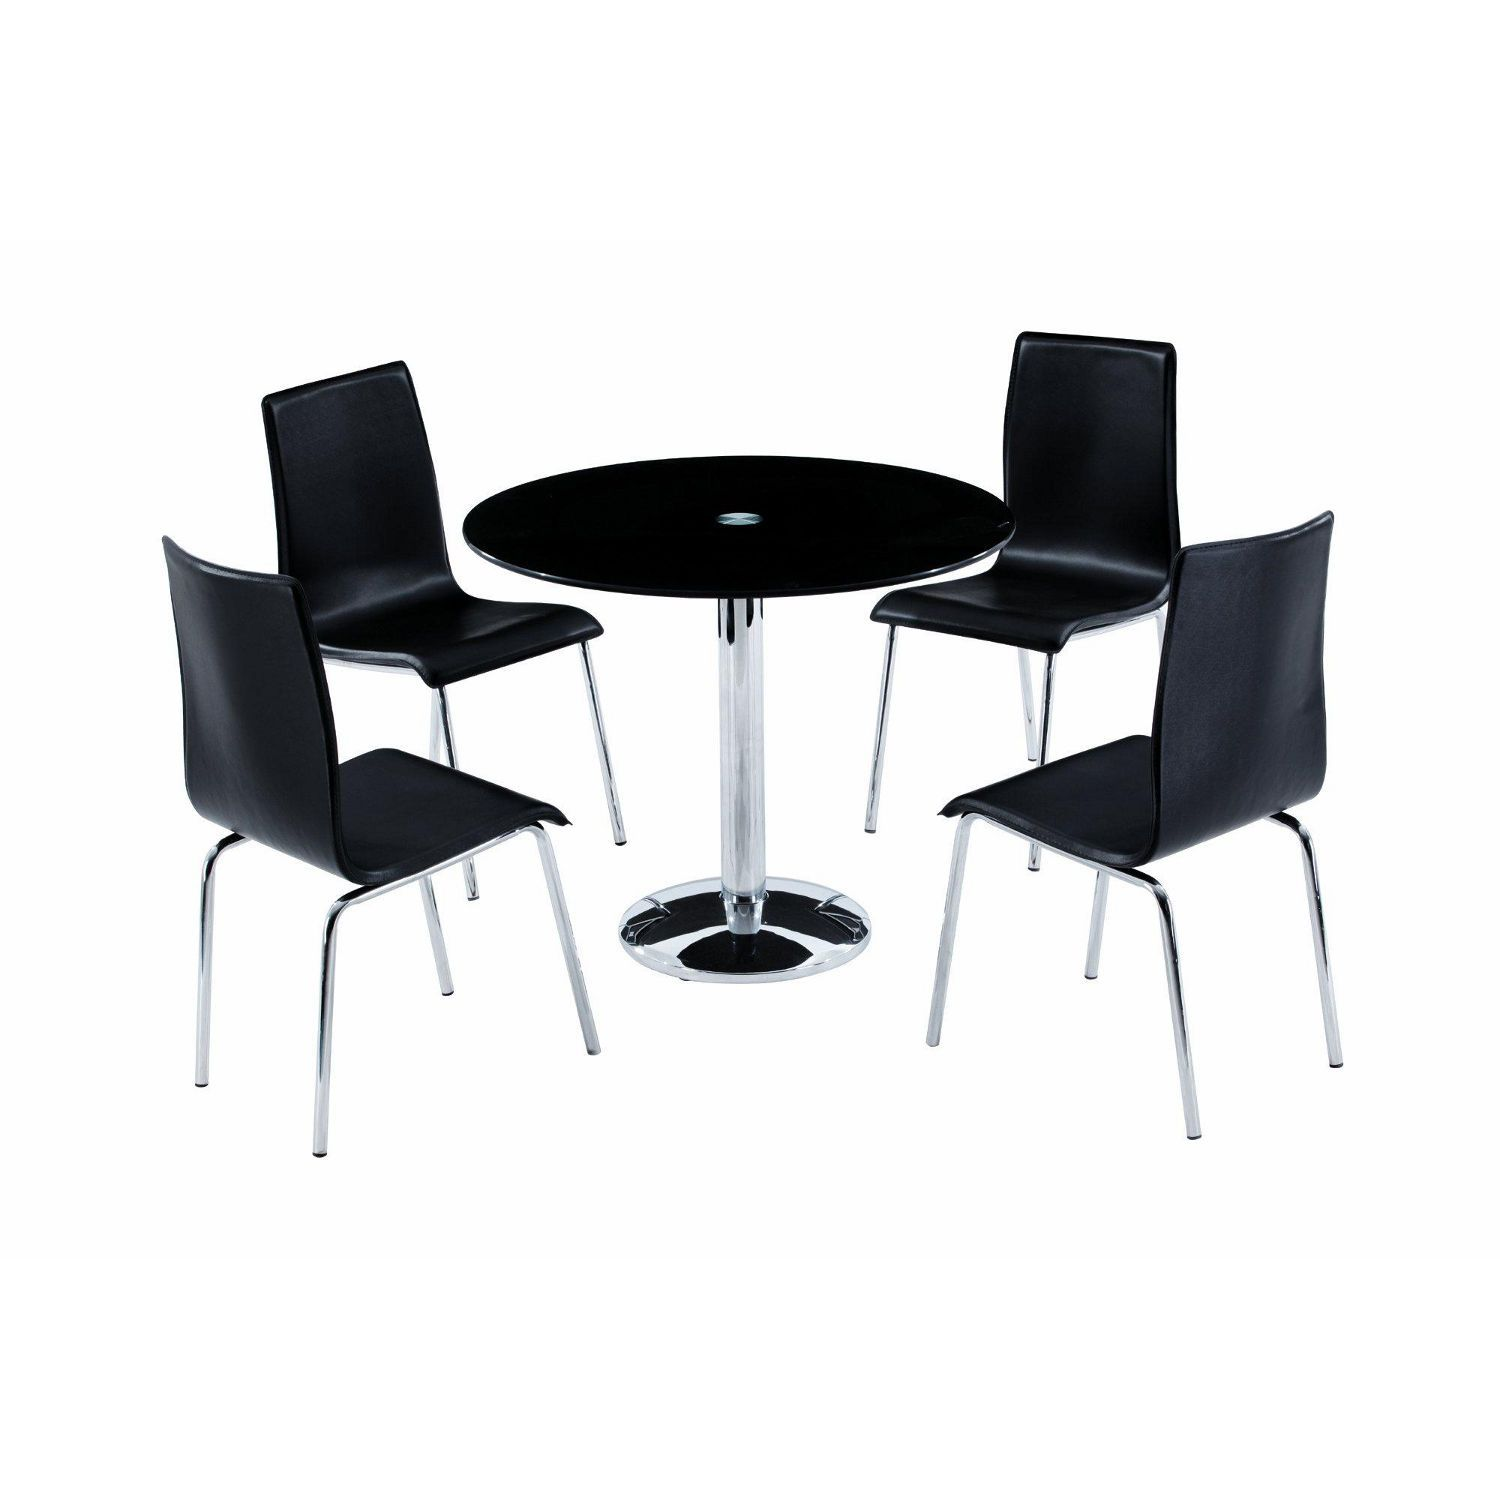 Updated Black Glass Dining Table Designs For Contemporary Dining Rooms Home Deco Glass Round Dining Table Black Glass Dining Table Glass Dining Table Designs